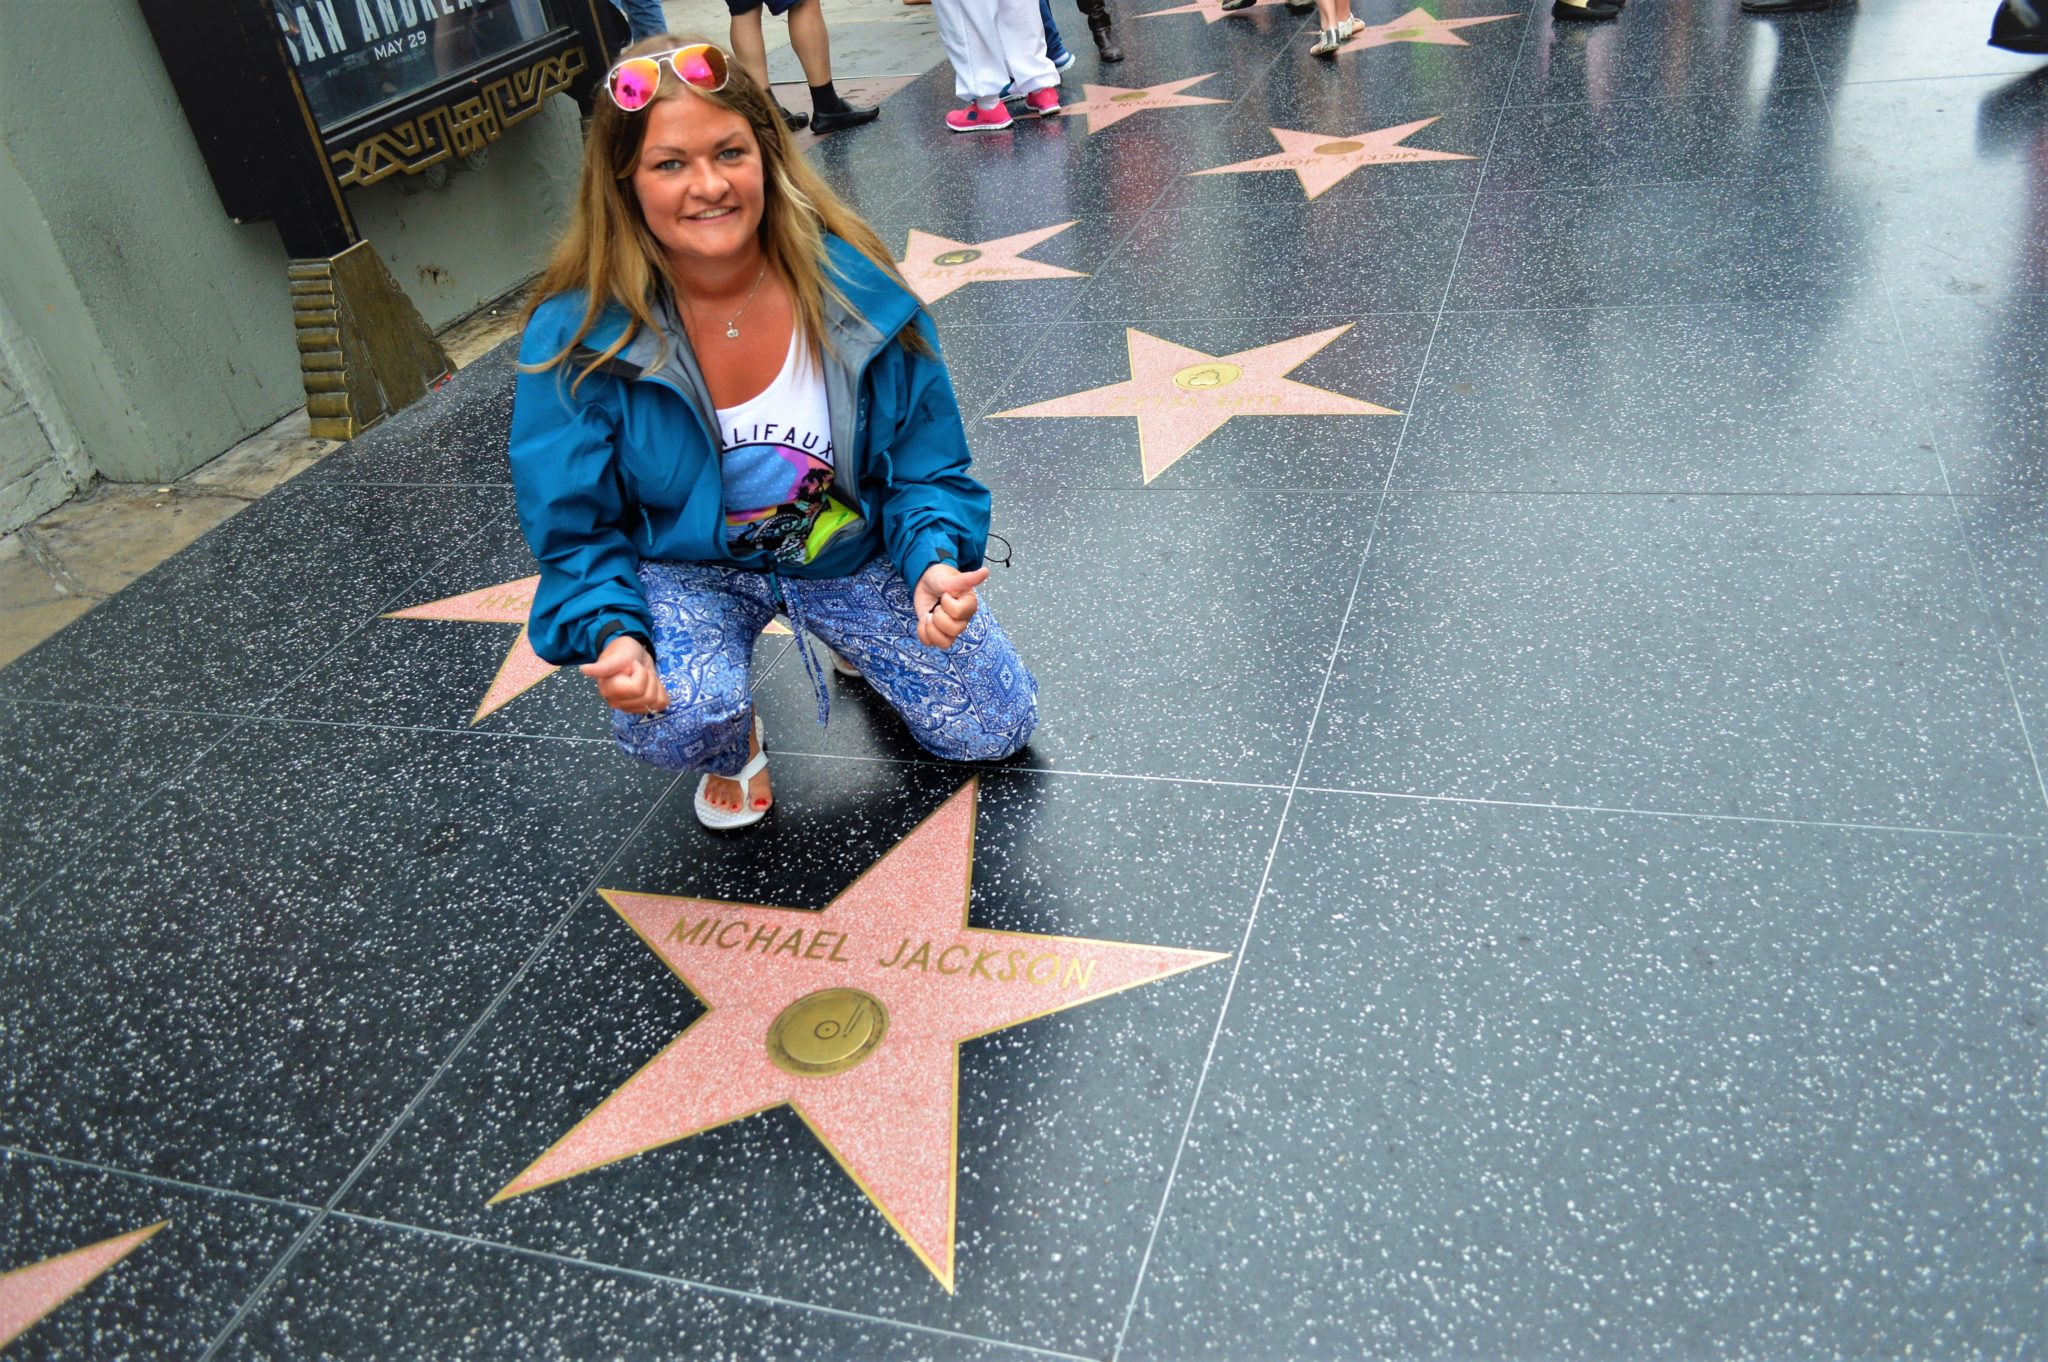 Michael Jackson star, Hollywood walk of fame, top things to do in los angeles